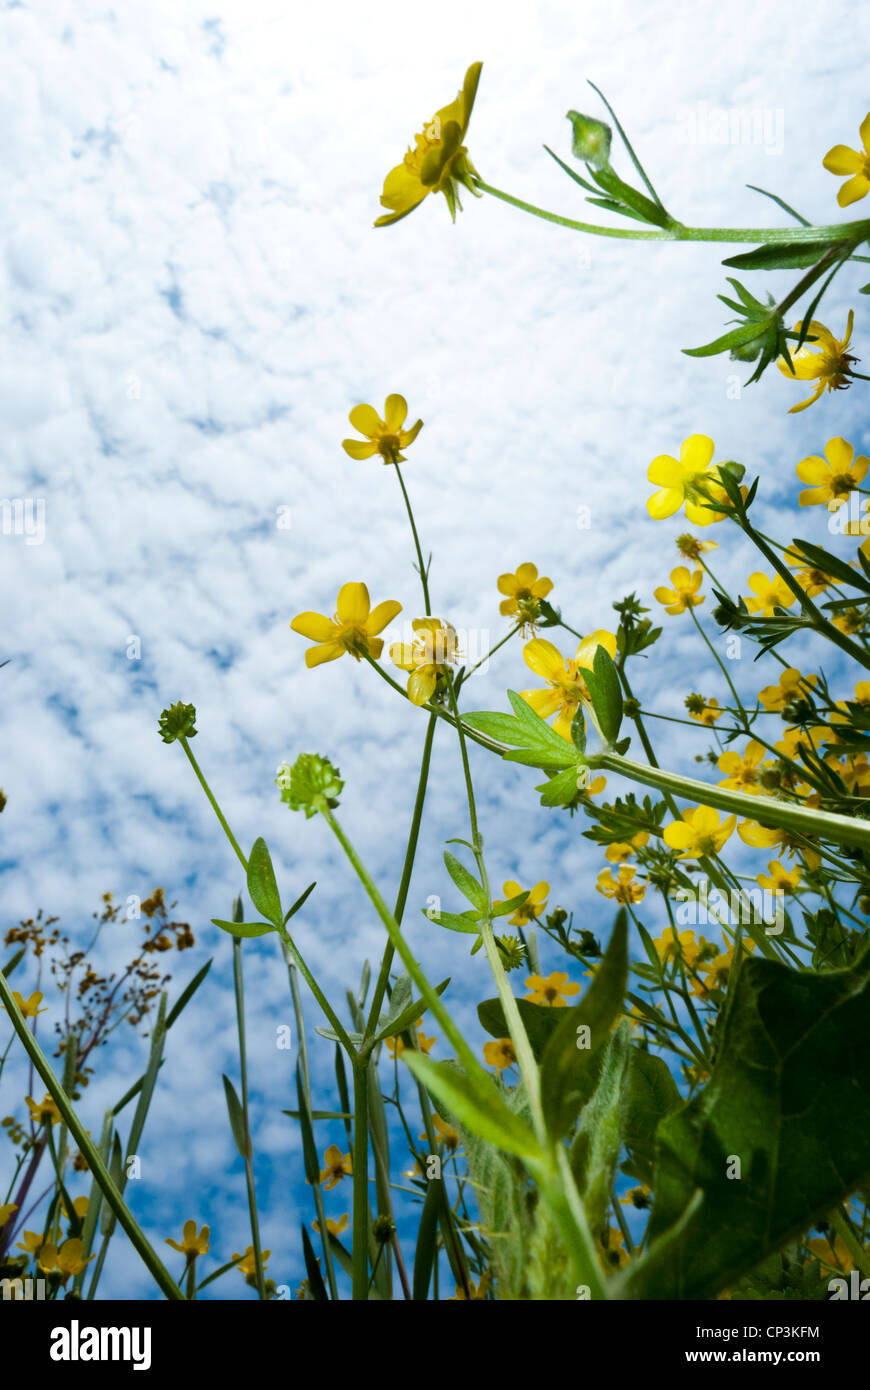 Worm's eye view of yellow wildflowers with a cloudy blue sky - Stock Image